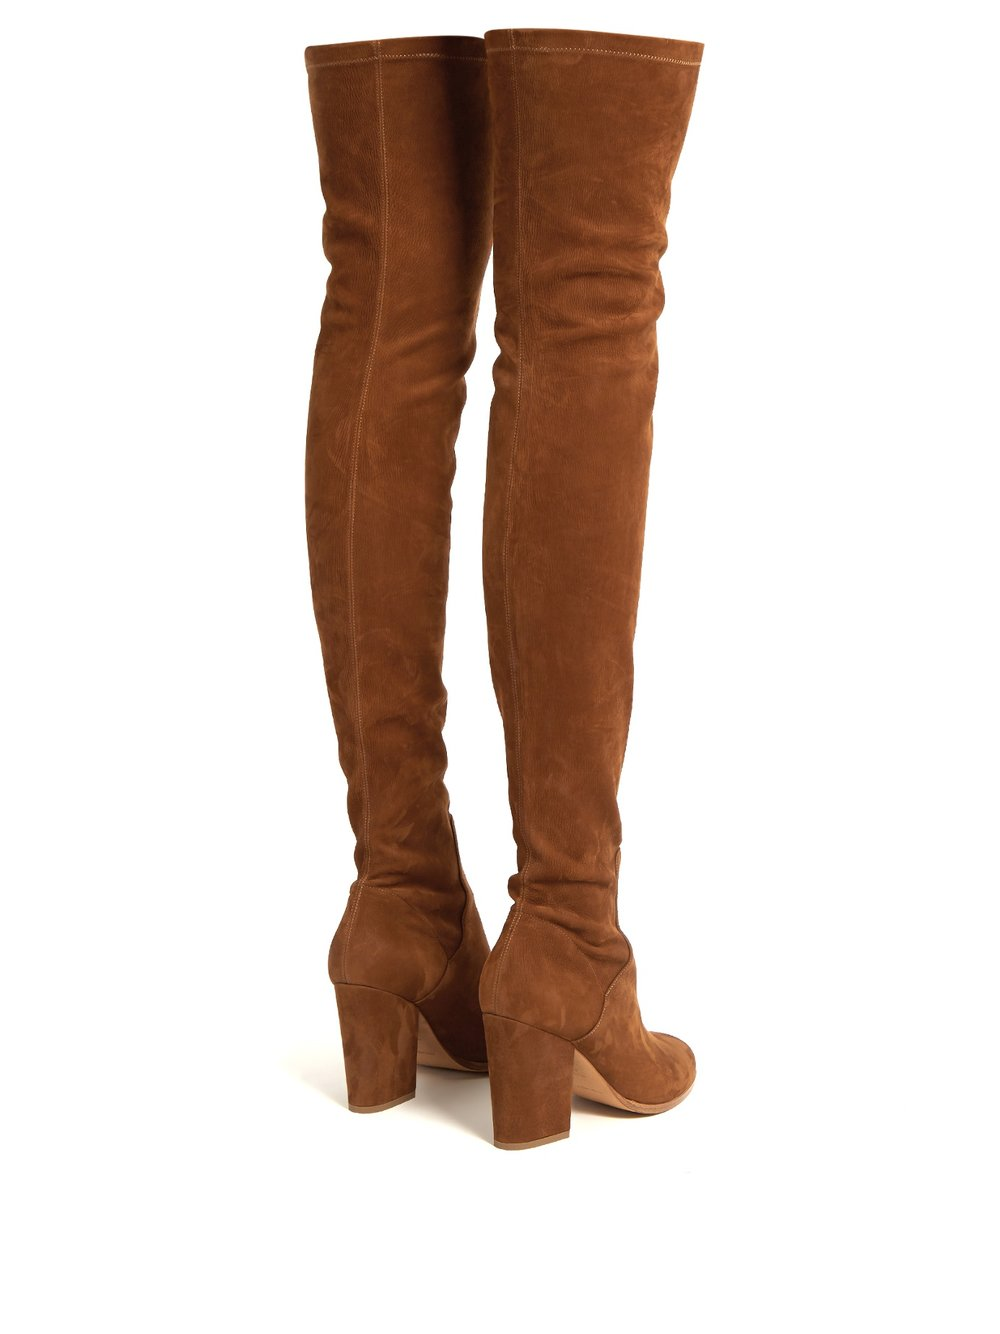 Best Ways To Wear Your Thigh High Boots — Live.Play.Luxe